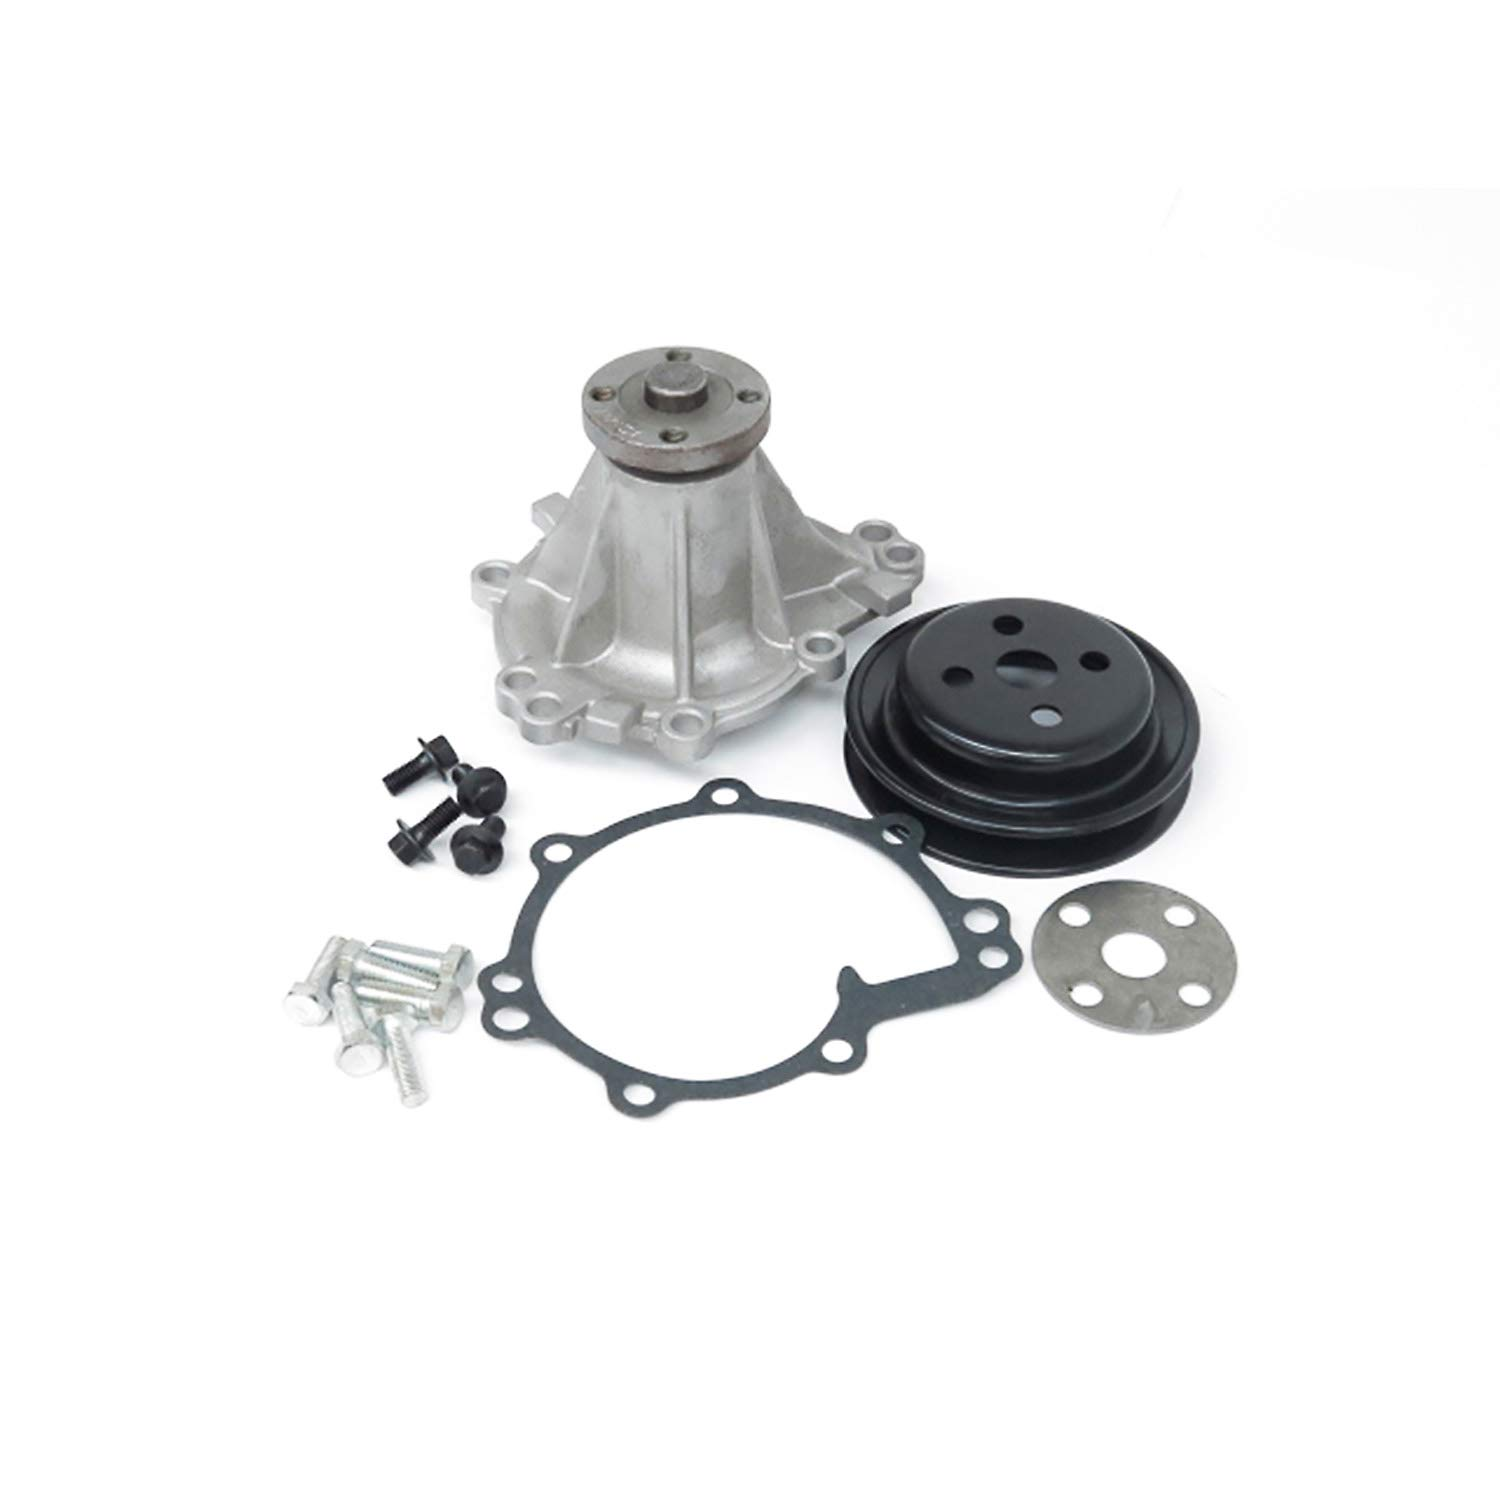 Amazon com: US Motor Works US5067 NEW WATER PUMP: Automotive